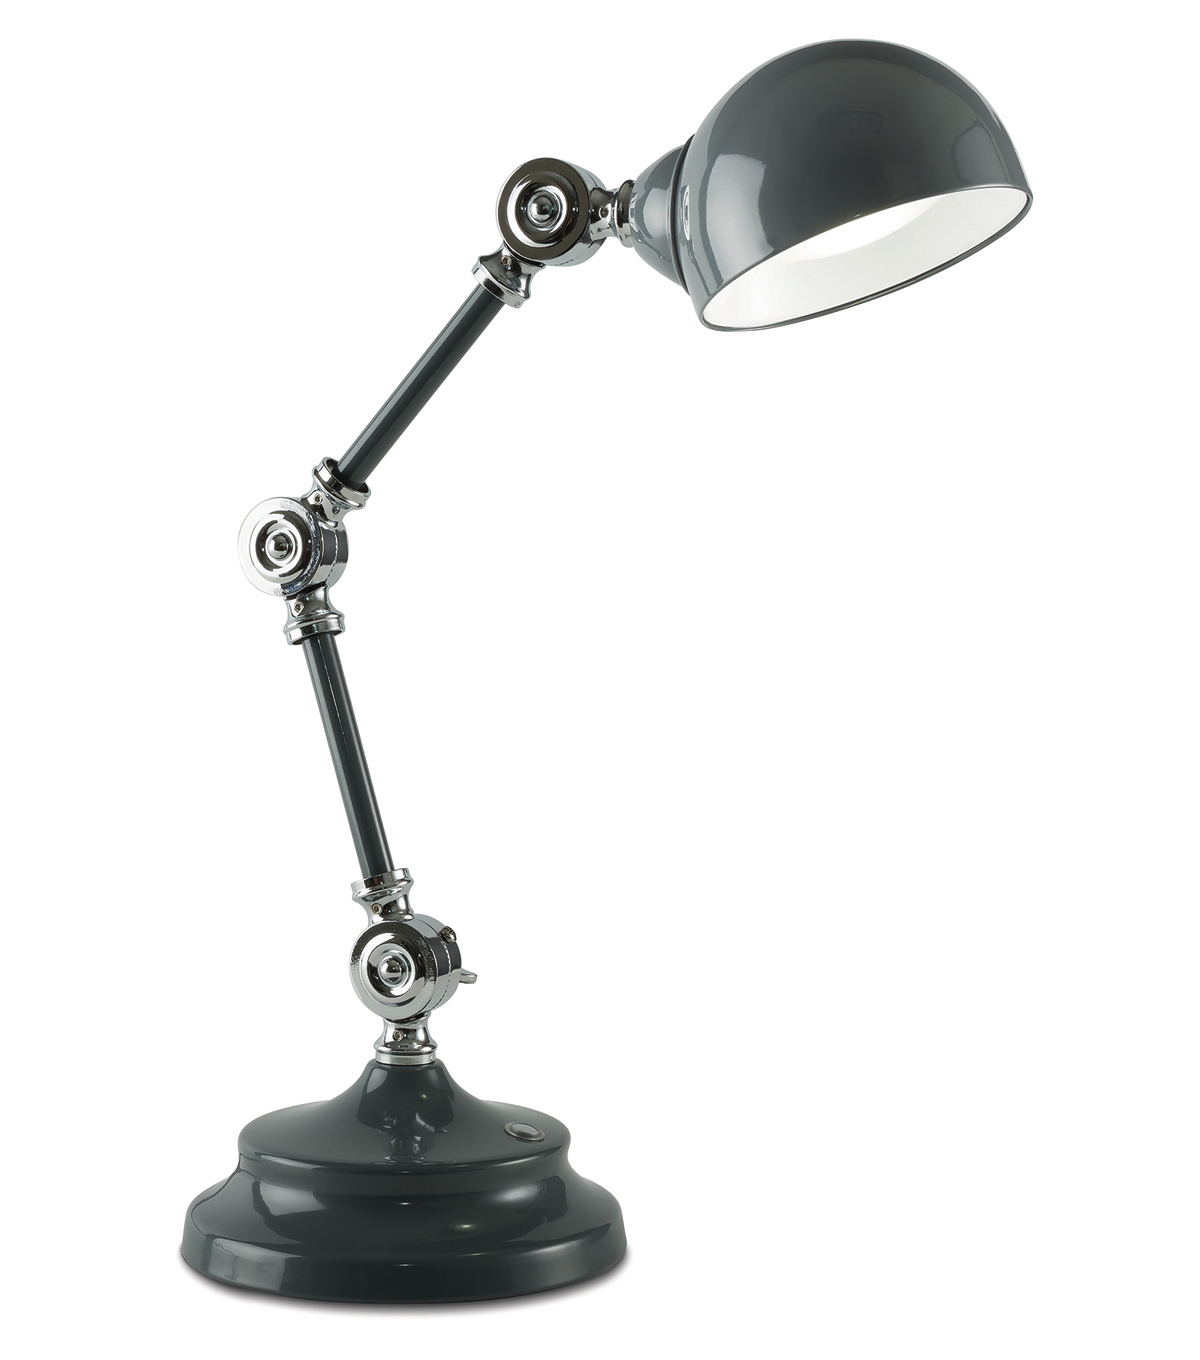 Floor Lamps, Desk Lamps, and Craft Lights | JOANN